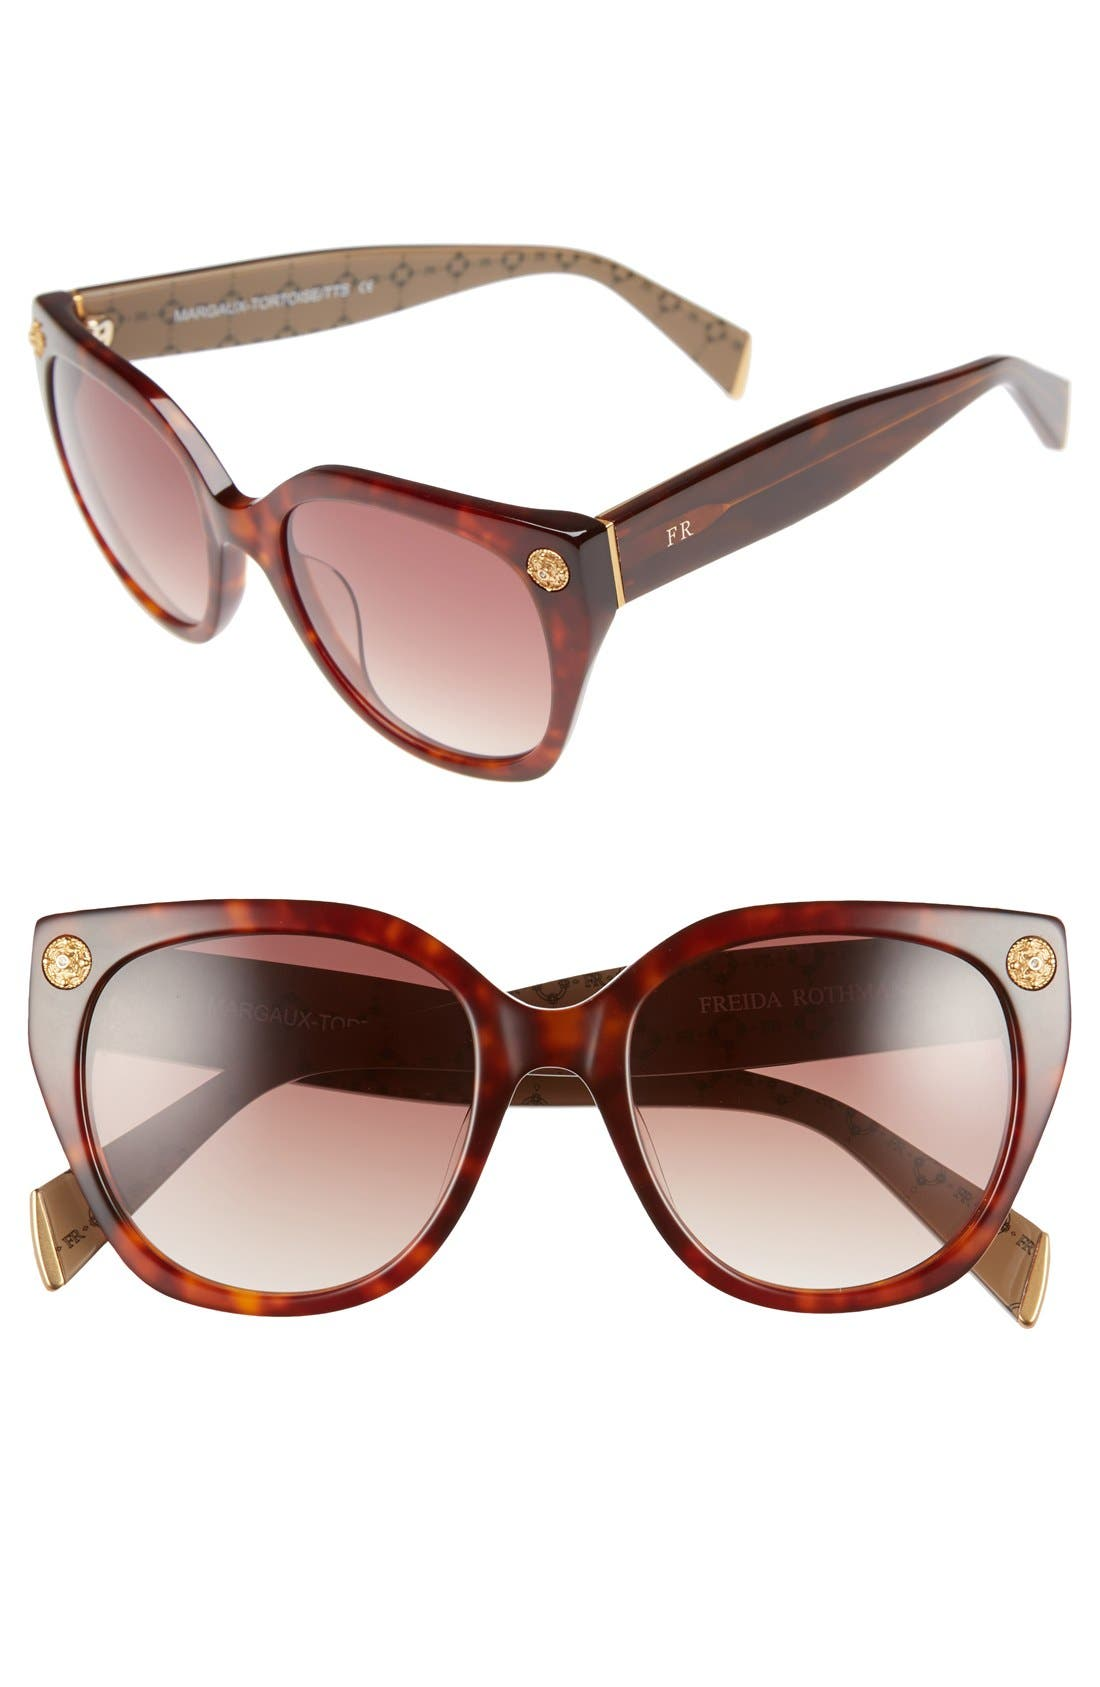 Freida Rothman 'Margaux Elegant' 54mm Retro Sunglasses,                         Main,                         color, TORTOISE